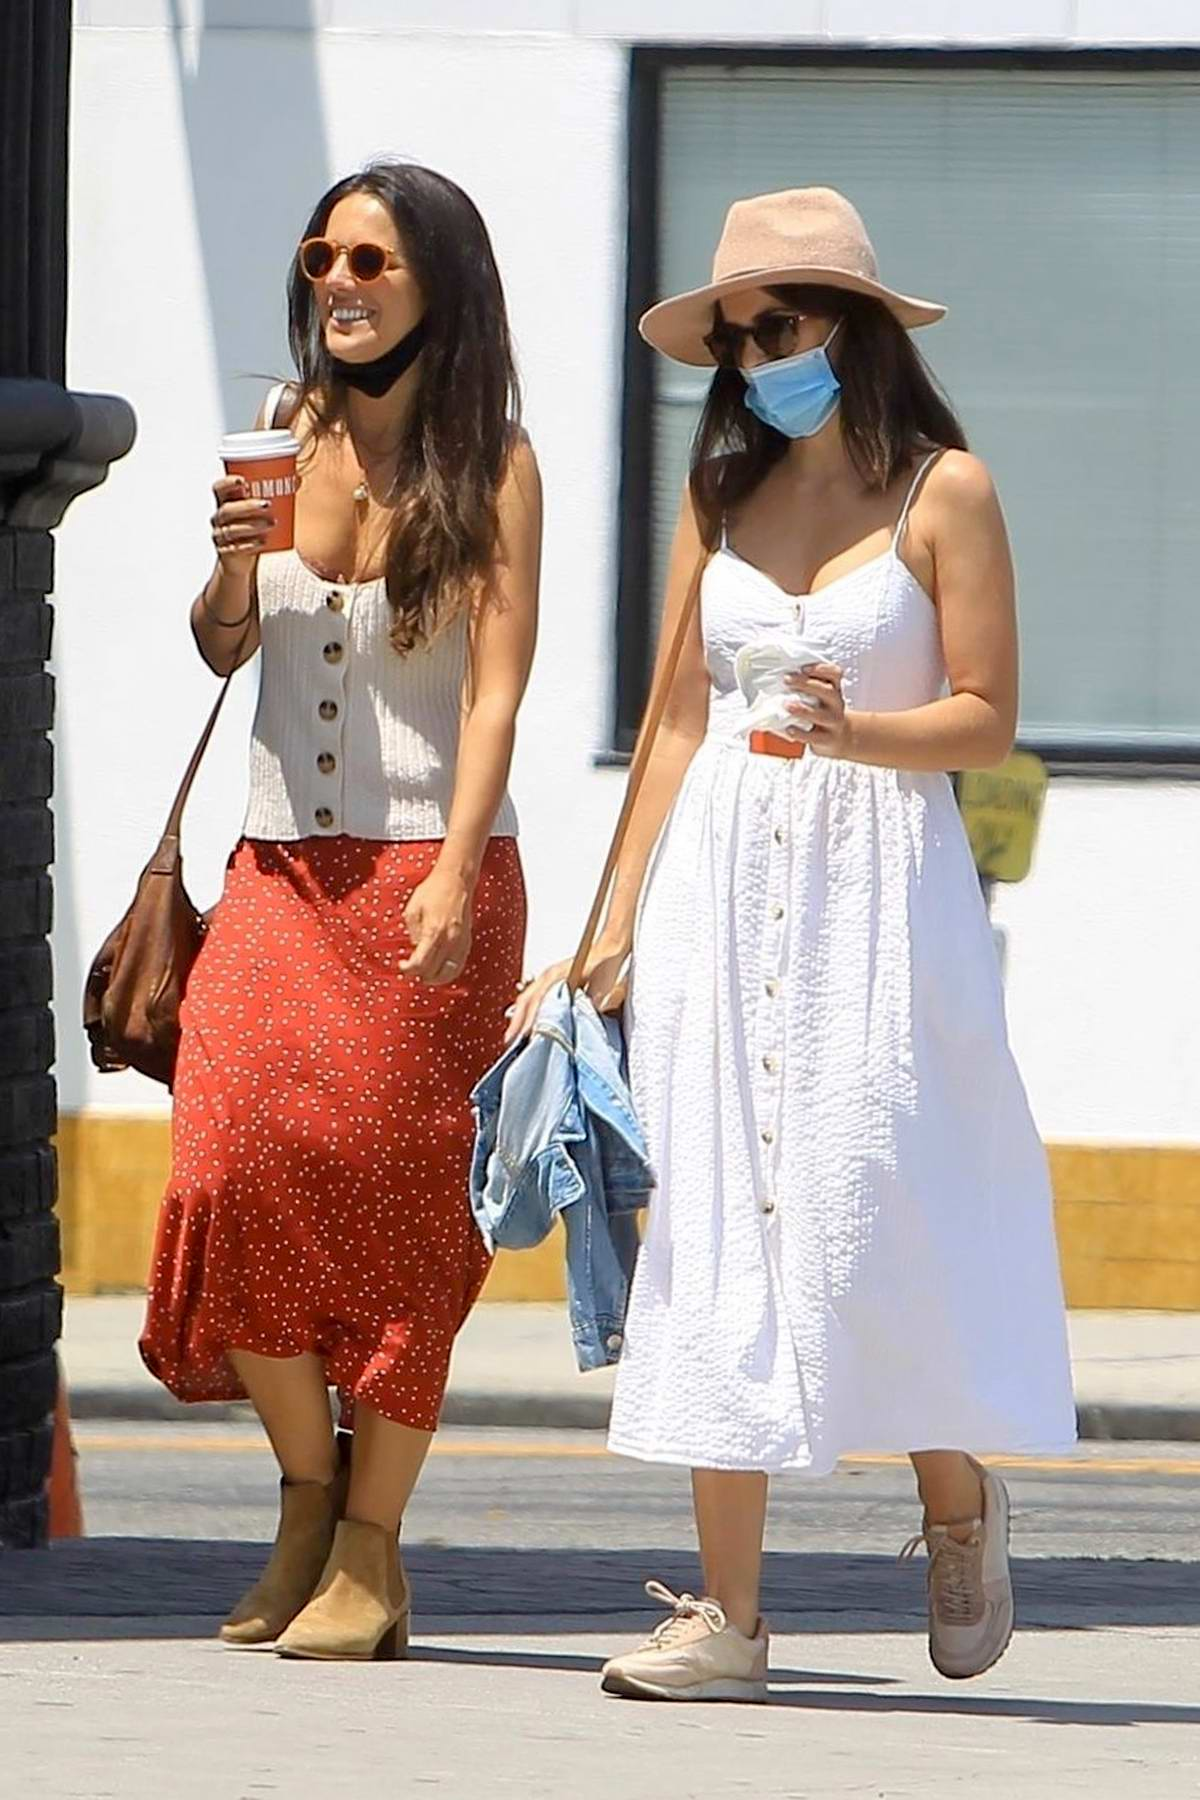 Camilla Belle steps out for a stroll with a friend in West Hollywood, California